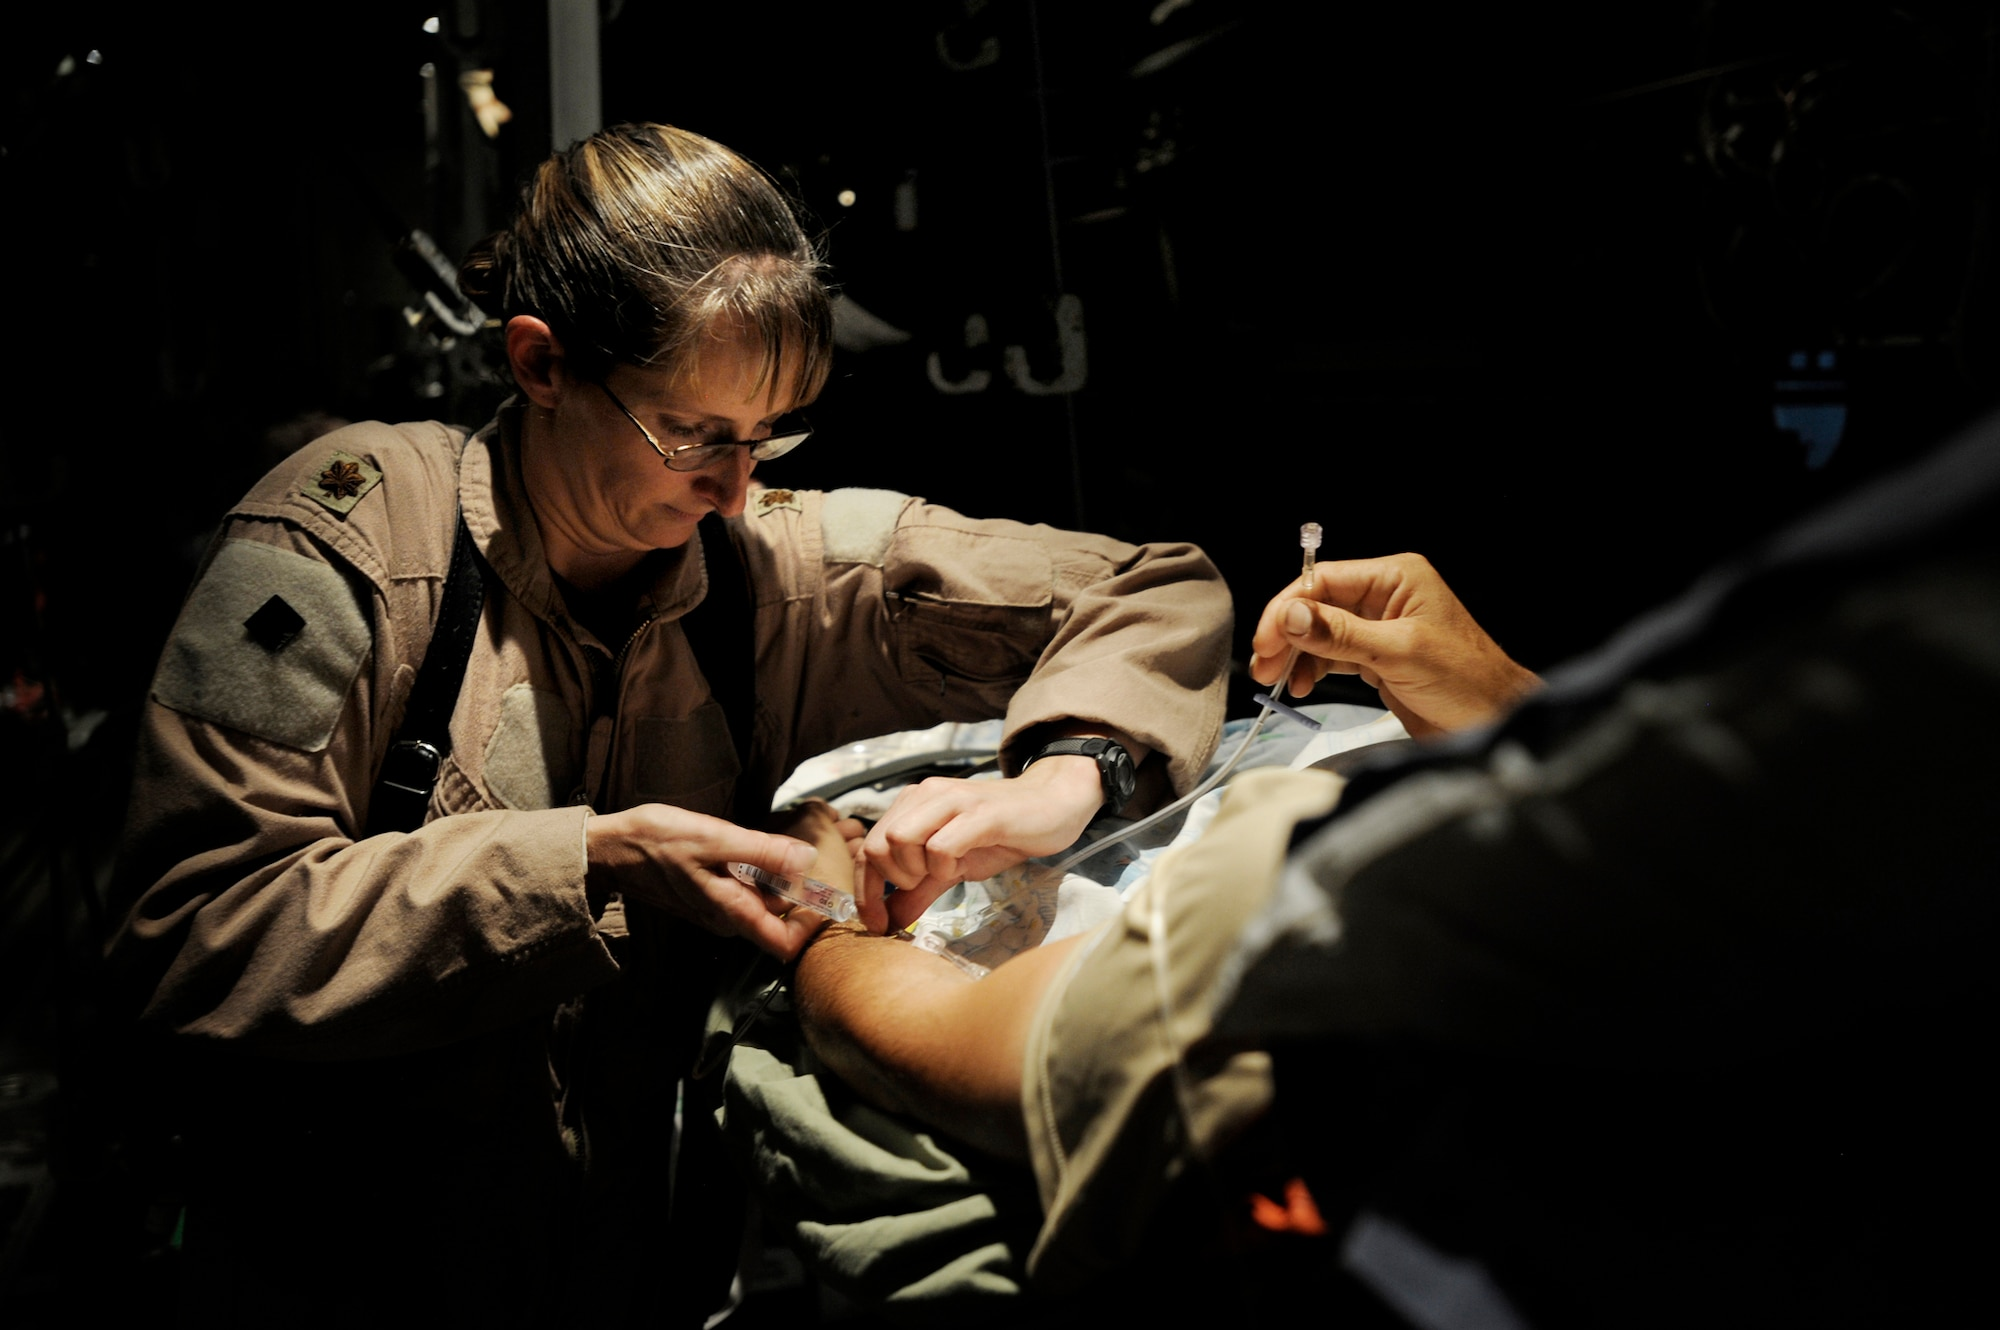 Maj. Missy Steckler provides care to a patient during a flight to a location that can provide a higher level of medical care. Major Steckler is a flight nurse assigned to the 451st Expeditionary Aeromedical Evacuation Flight at Kandahar Airfield, Afghanistan. (U.S. Air Force photo/Staff Sgt. Shawn Weismiller)